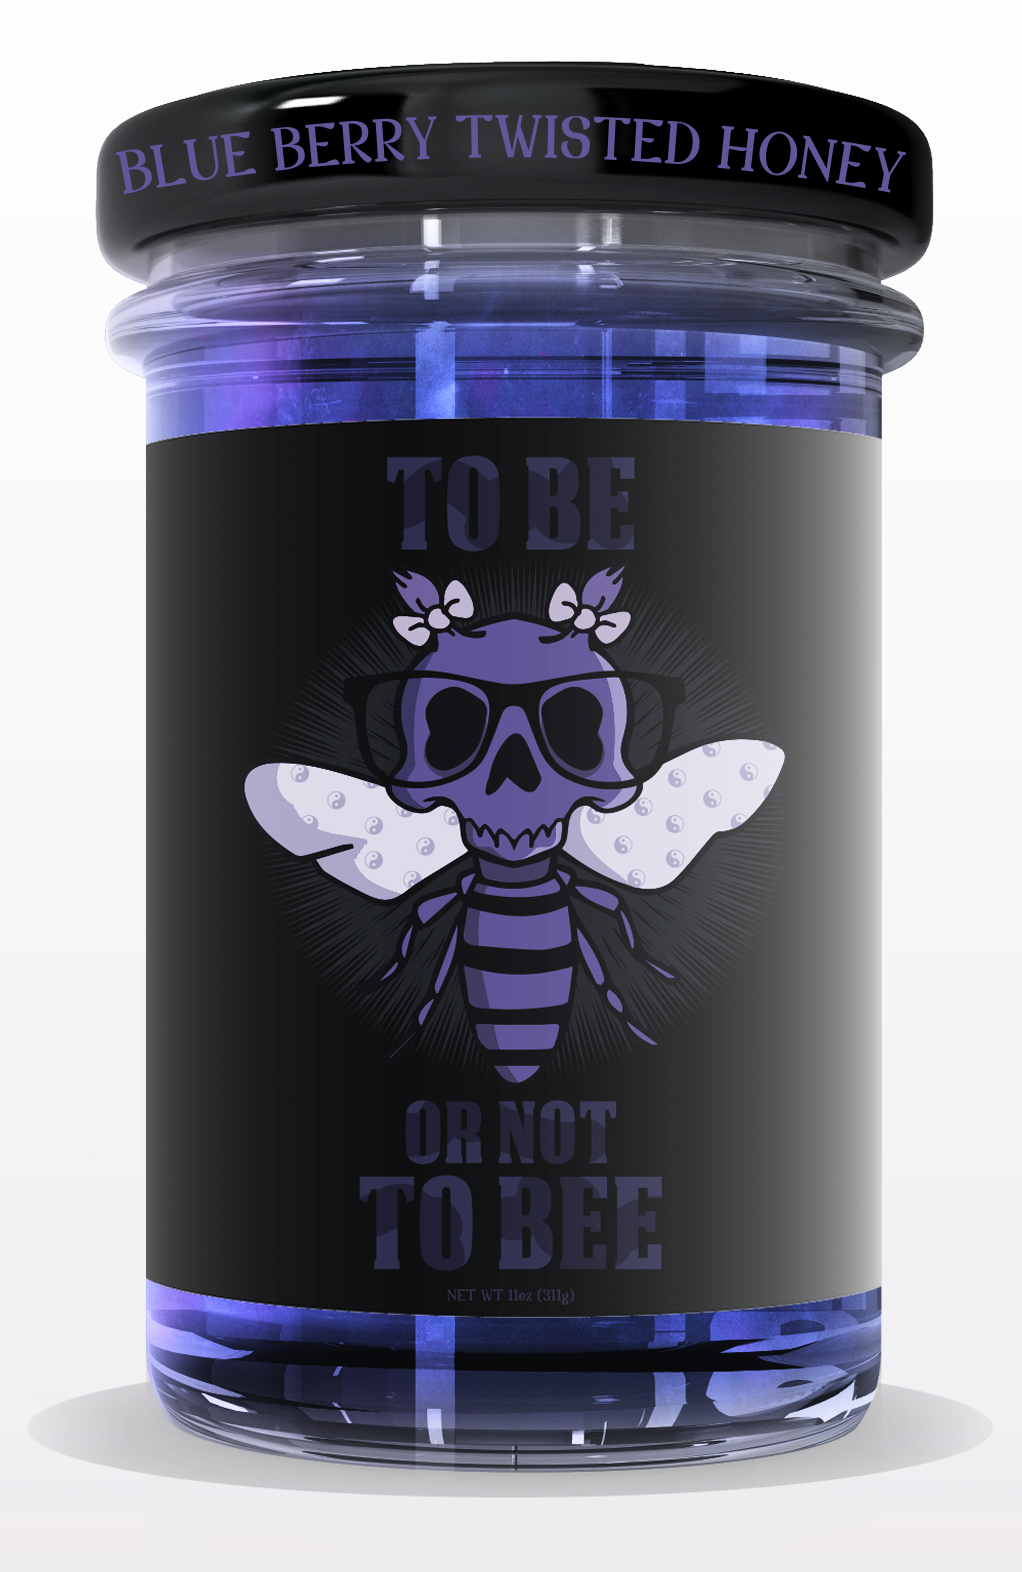 tighter jar HONEY jar mock up BLUE